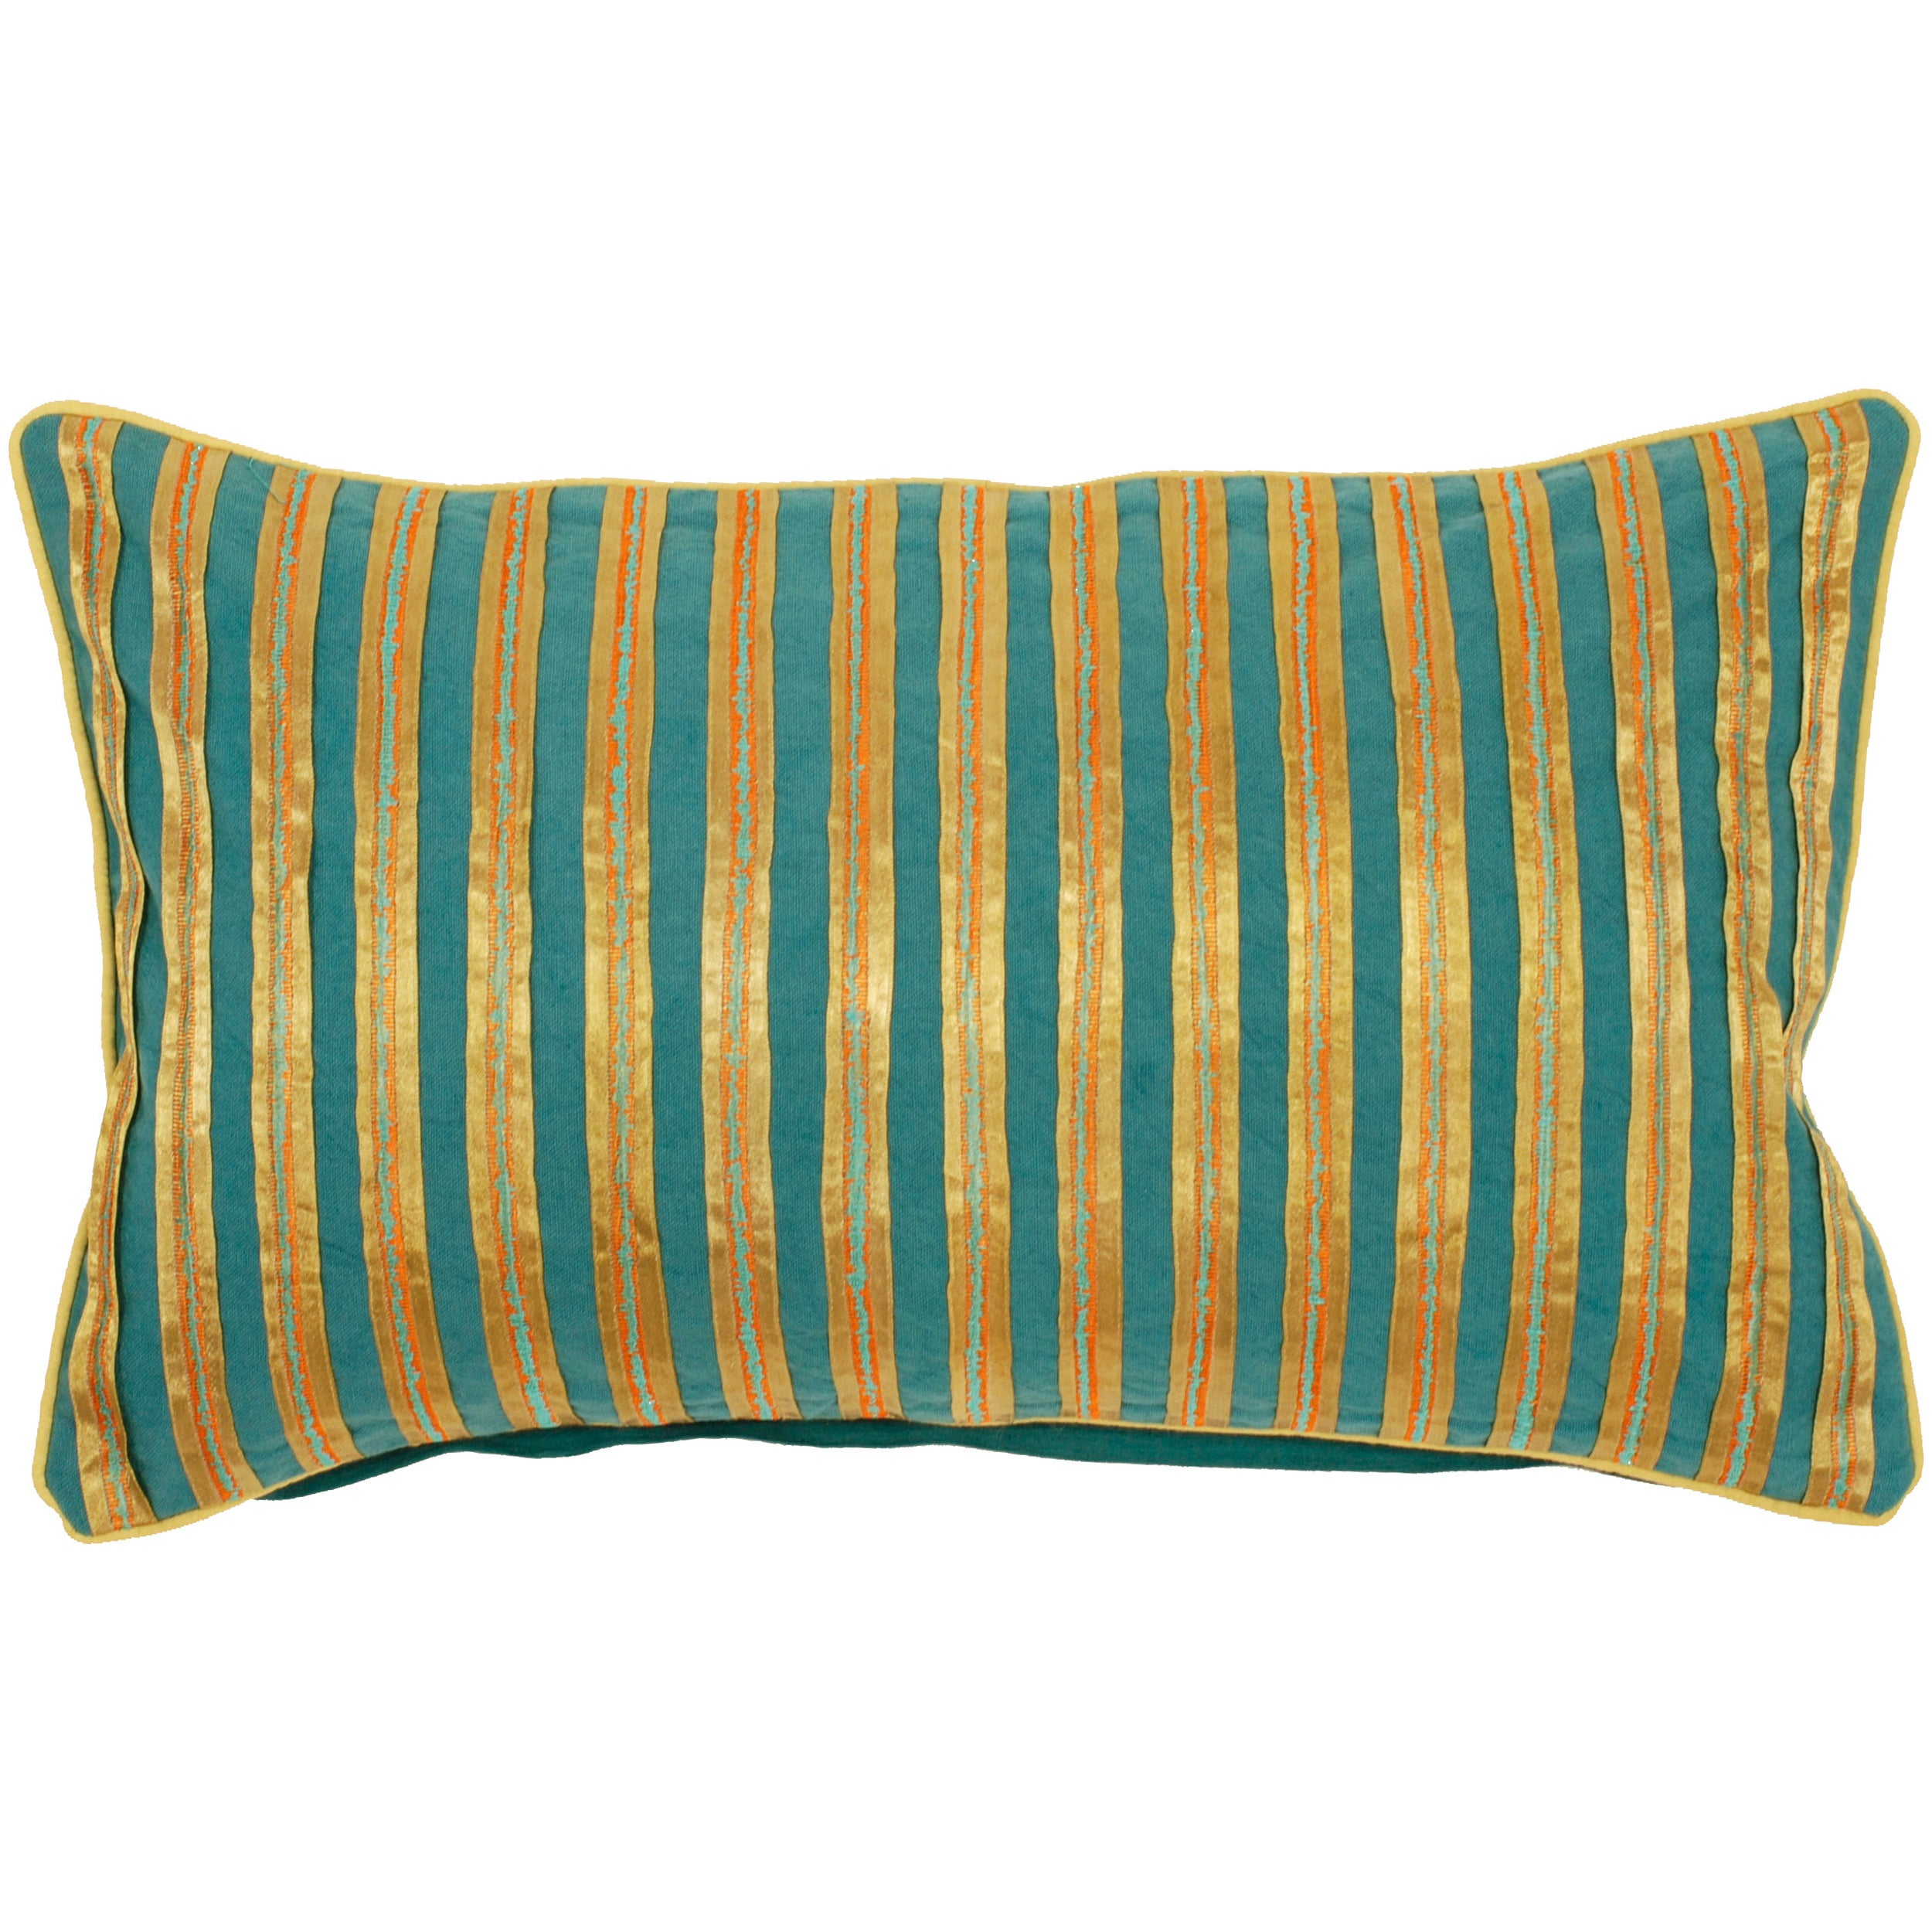 Decorative 13-inch Zug Pillow